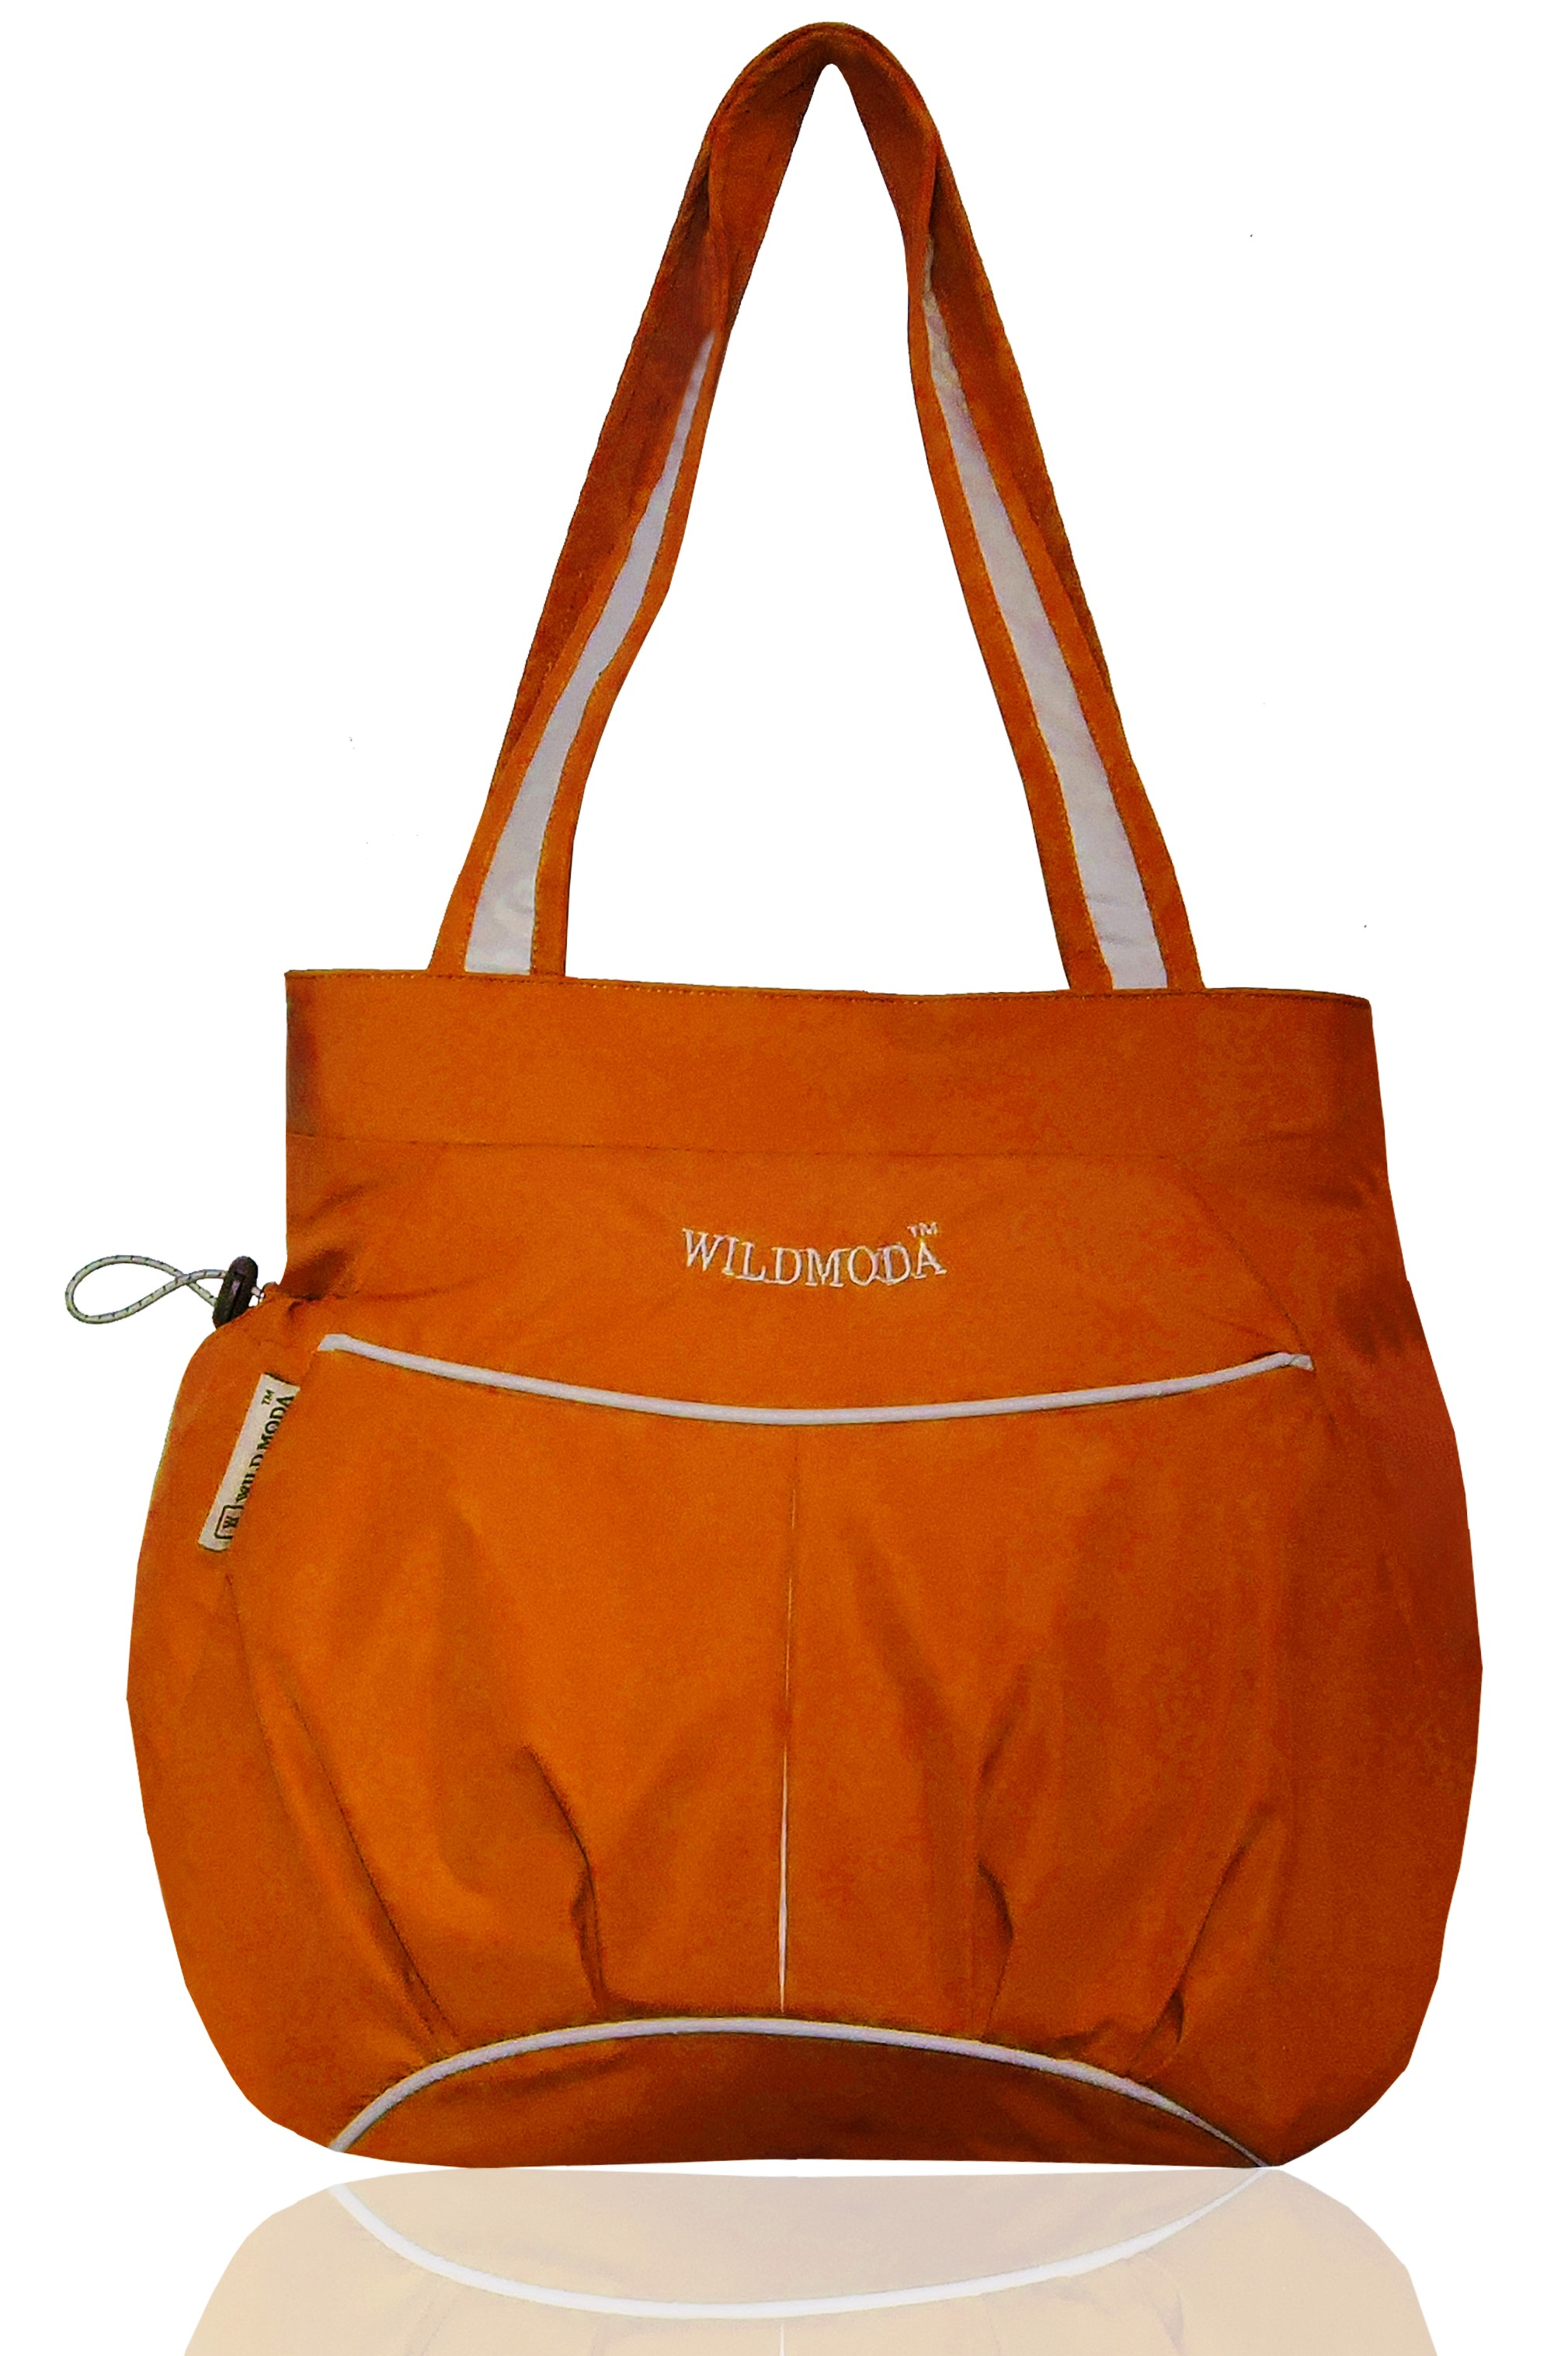 Wildmoda Women Orange Shoulder Bag